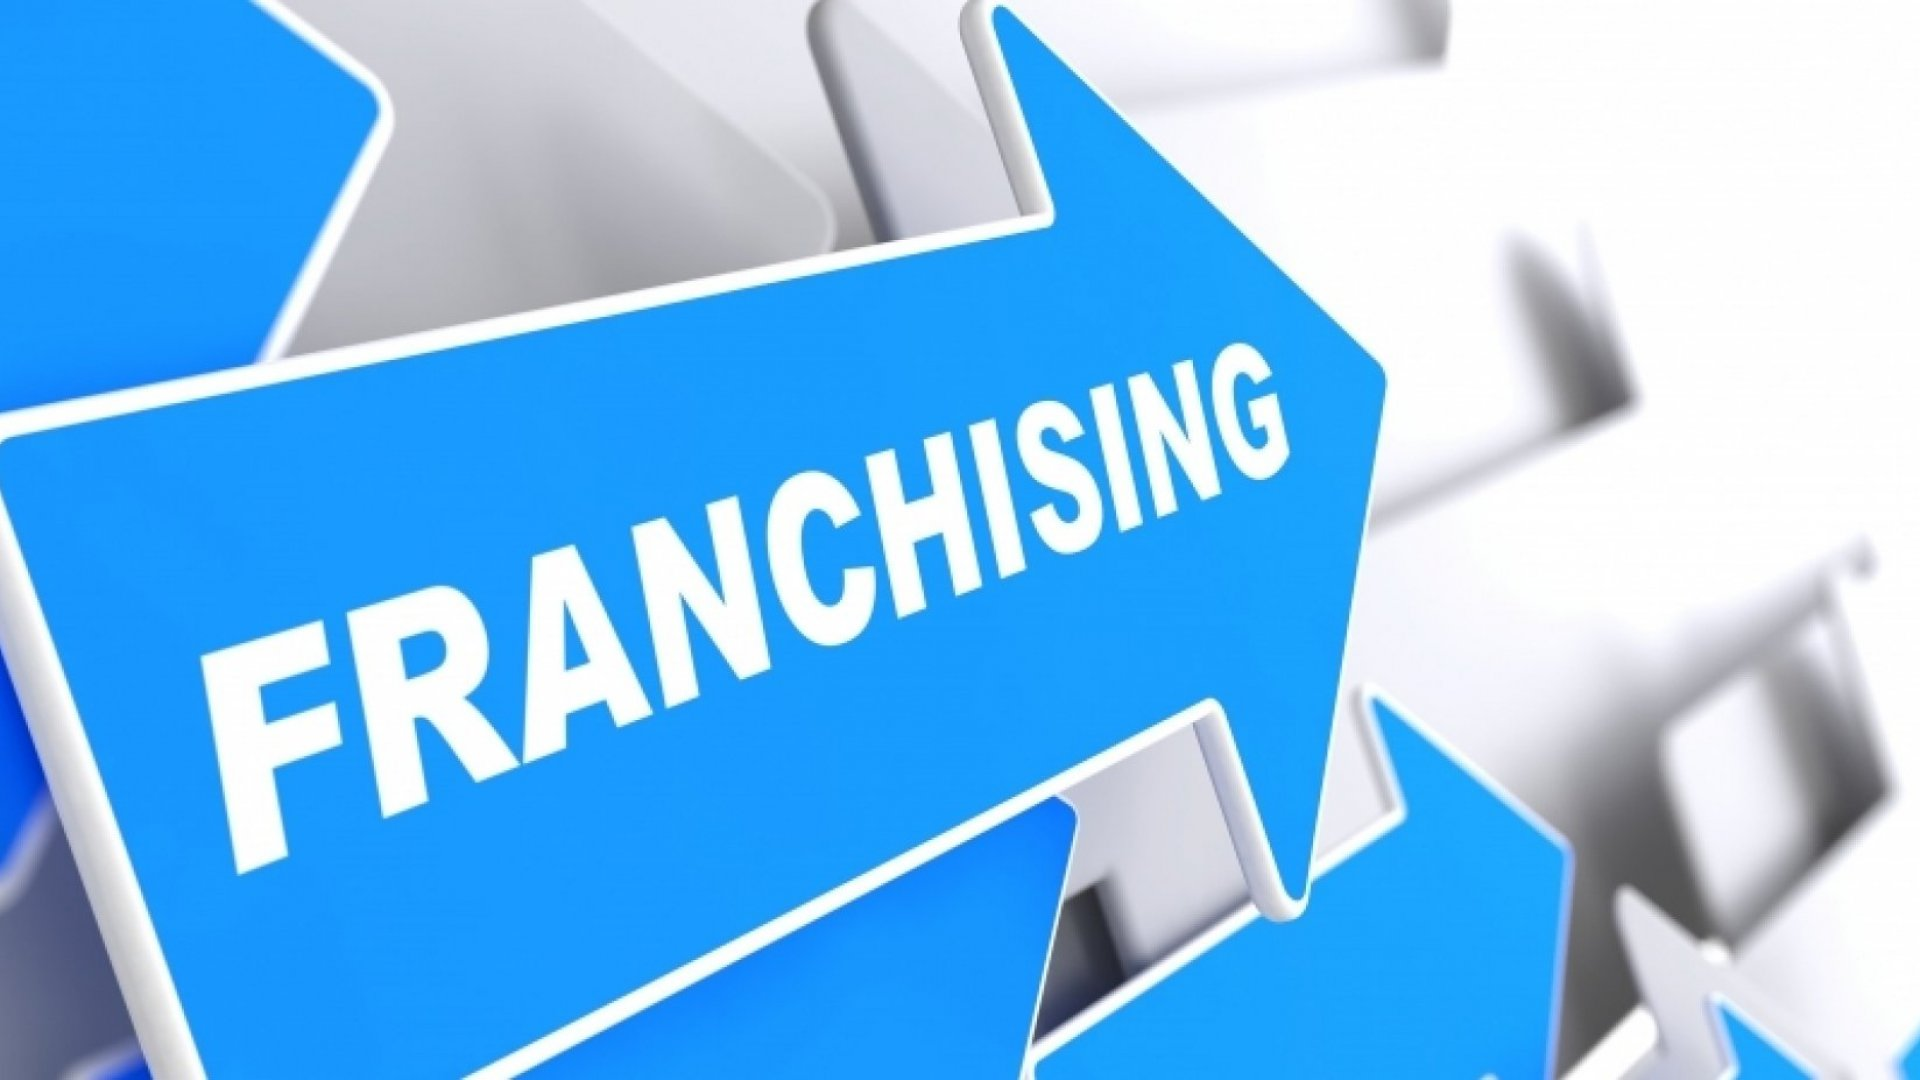 Are Millennials the Future of Franchises?